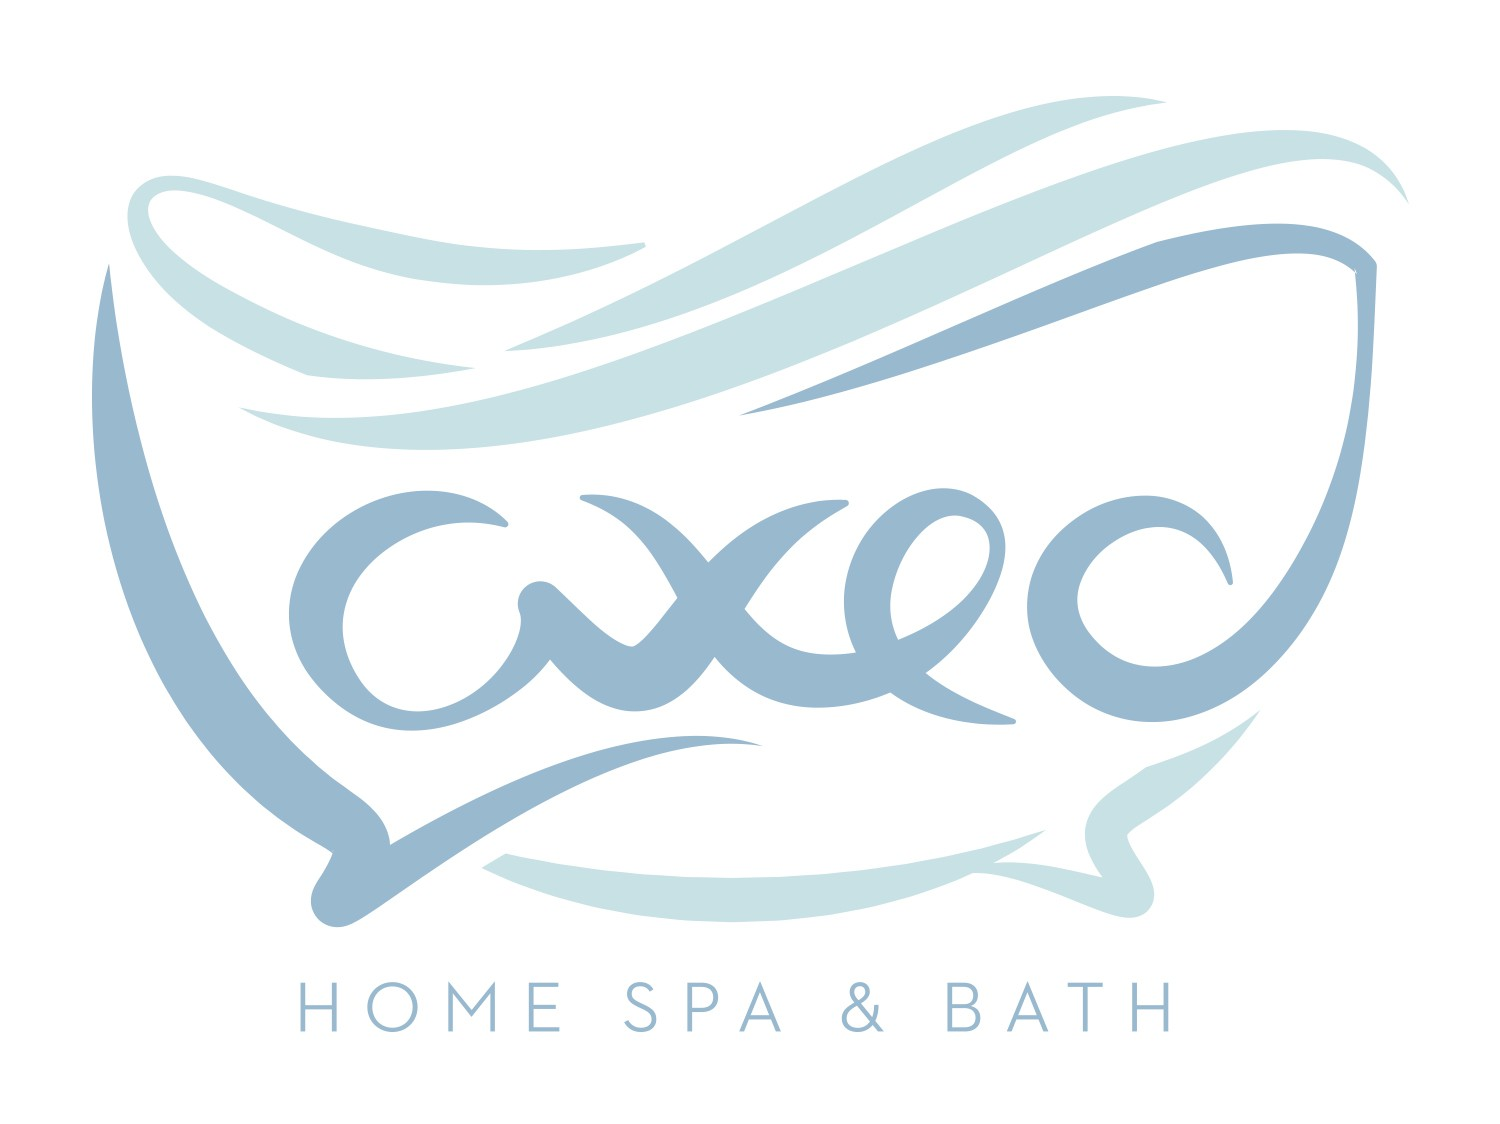 Create a fun yet elegant and classic logo design for the new bath and body company, Laxed.